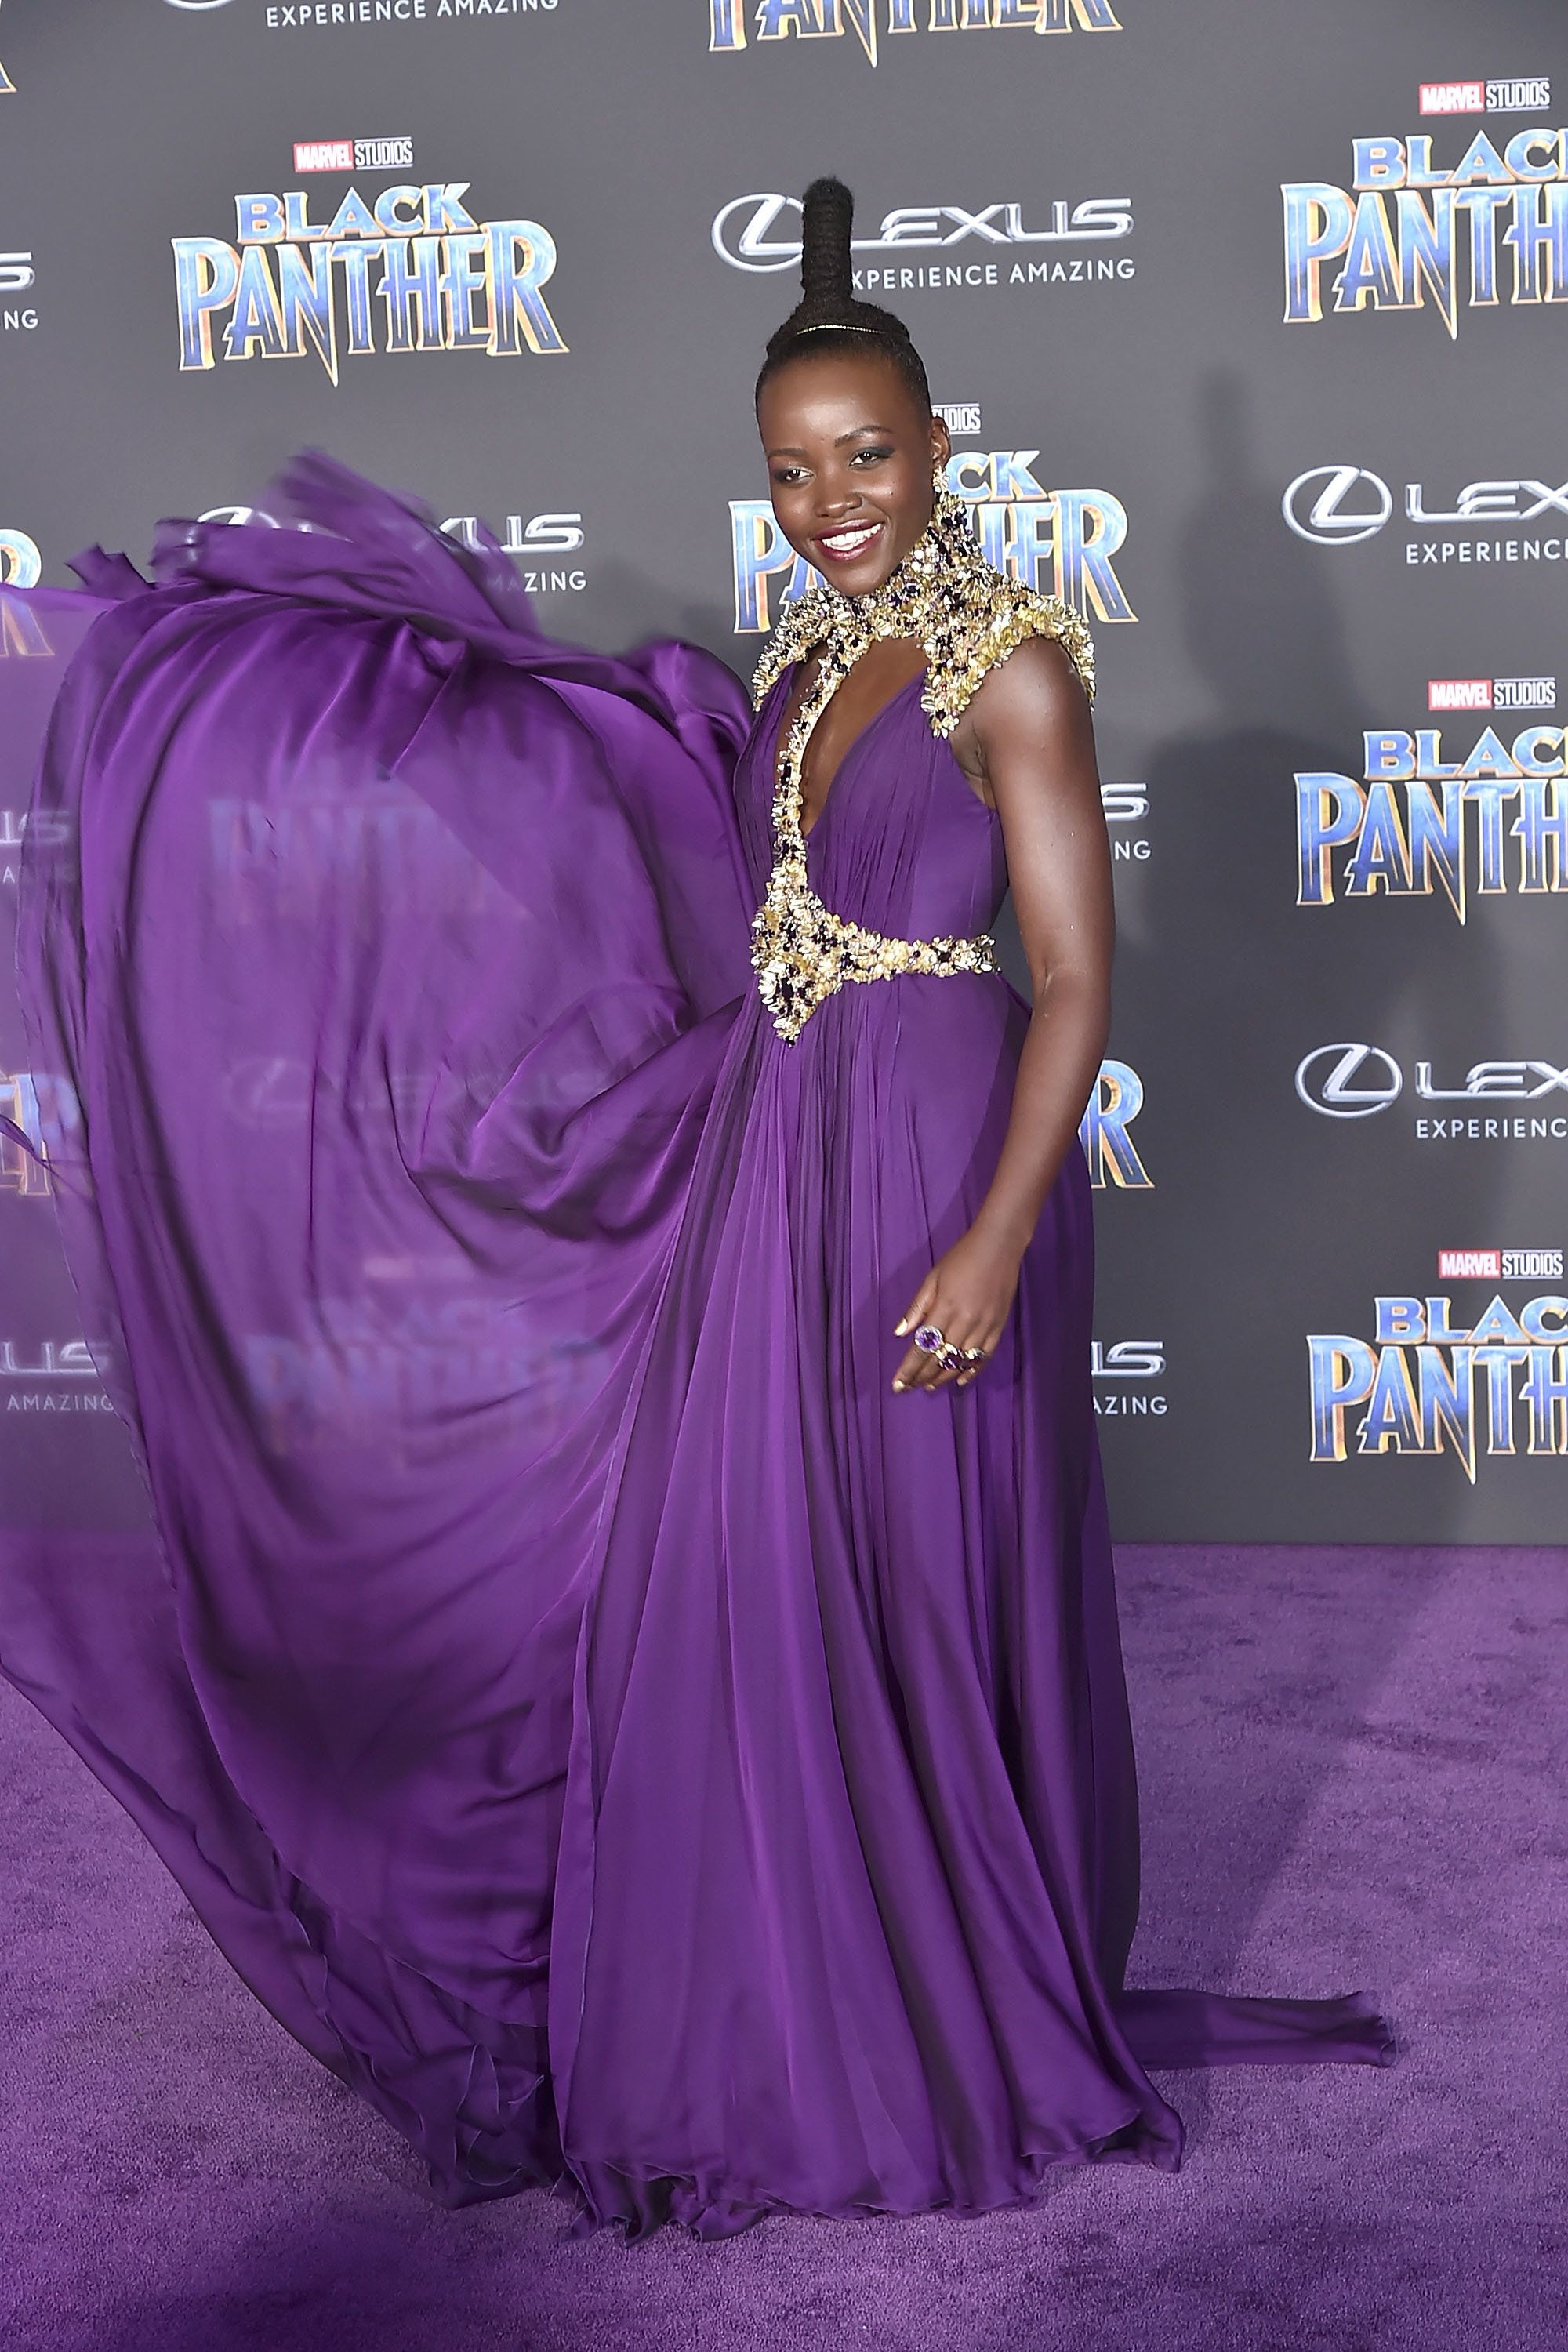 HOLLYWOOD, CA - JANUARY 29:  Lupita Nyong'o attends the Premiere Of Disney And Marvel's 'Black Panther' - Arrivals on January 29, 2018 in Hollywood, California.  (Photo by David Crotty/Patrick McMullan via Getty Images)